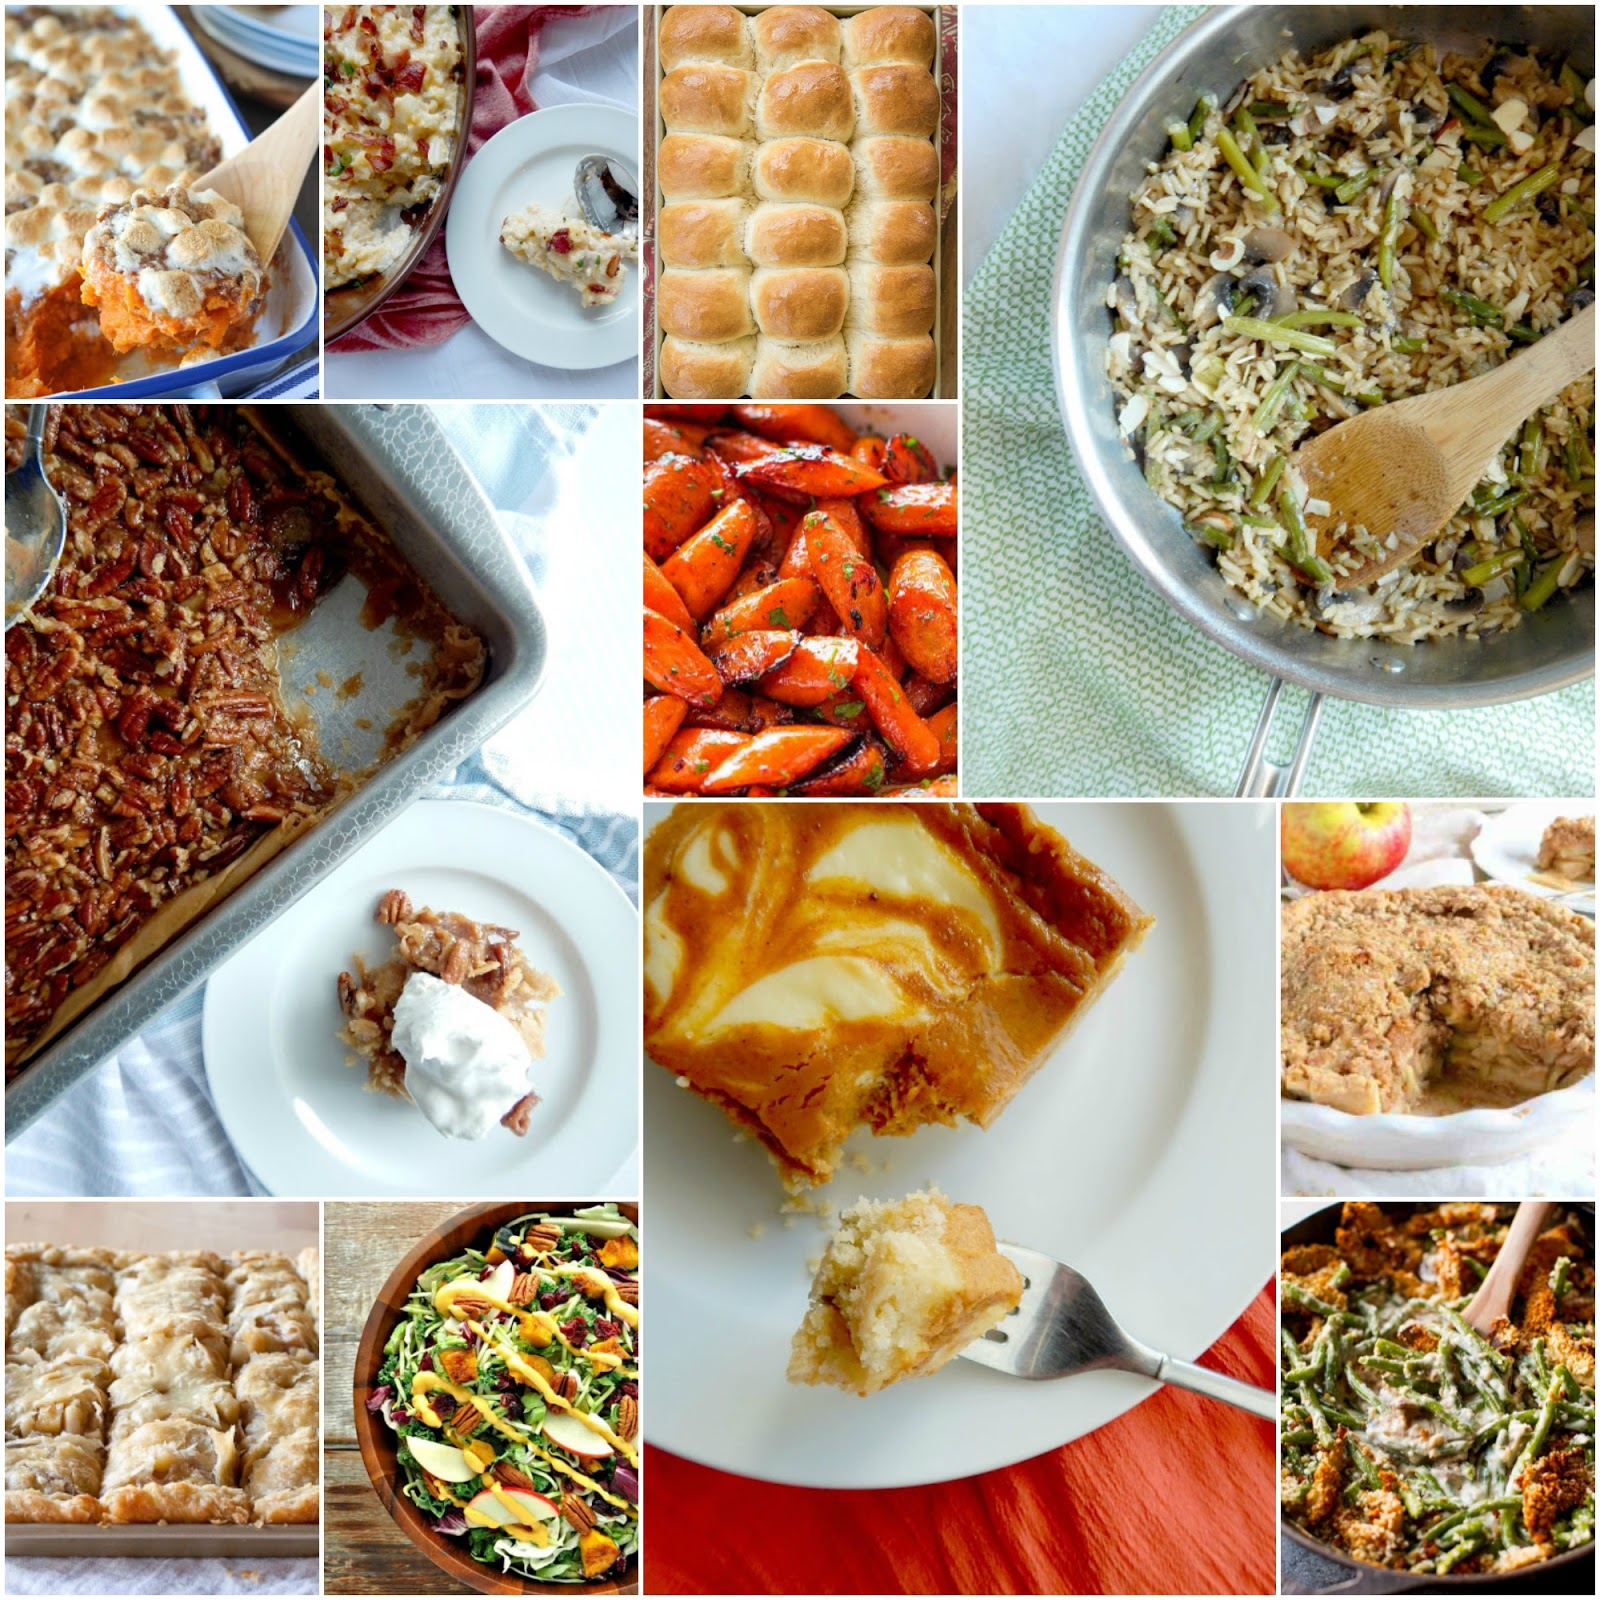 Ally's Sweet & Savory Eats: 30 Side Dishes & Desserts For